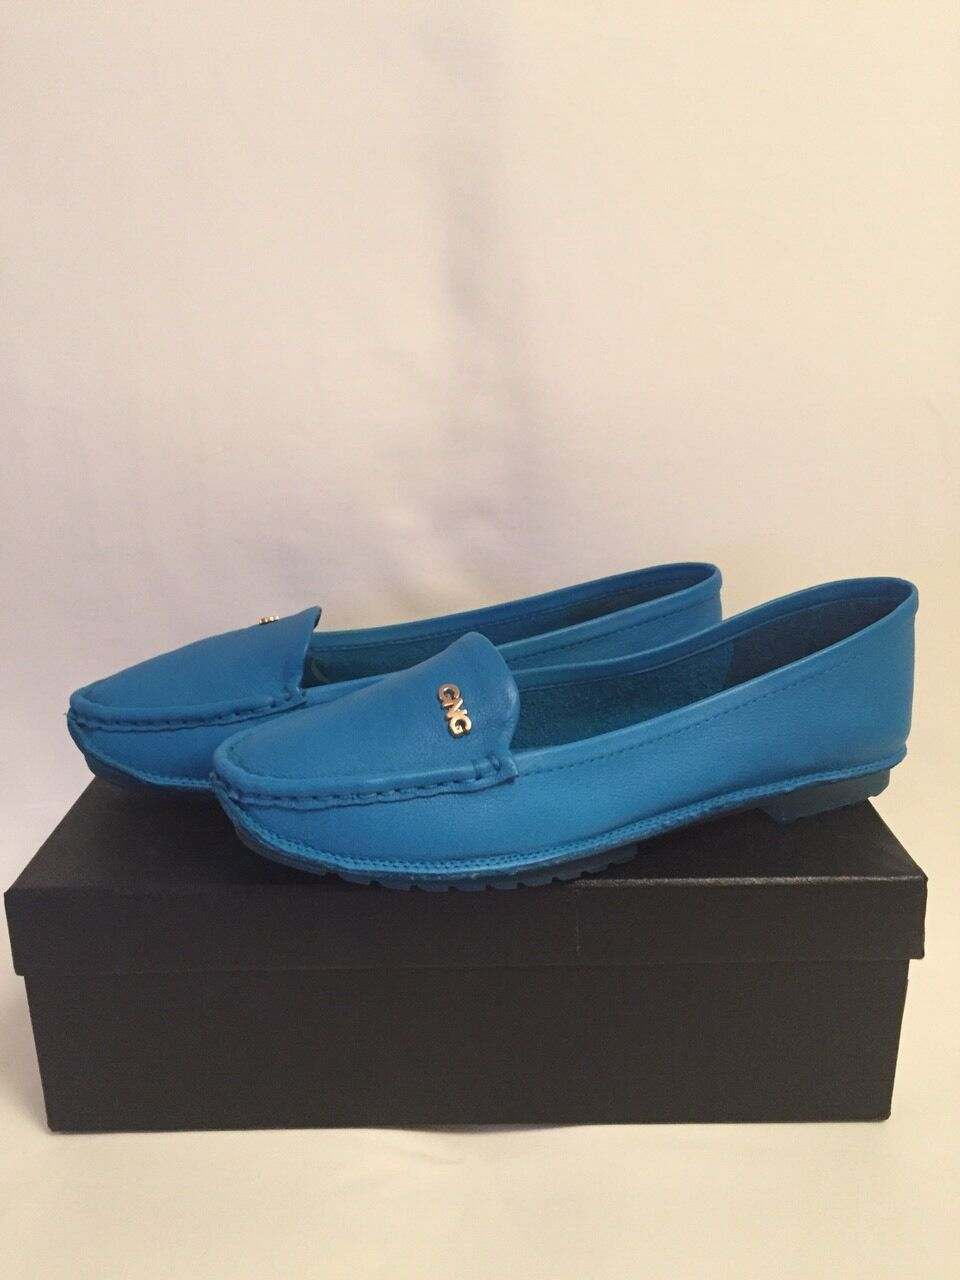 LEATHER MOCCASIN FOR WOMEN SUZANA RICCI 39 SIZE